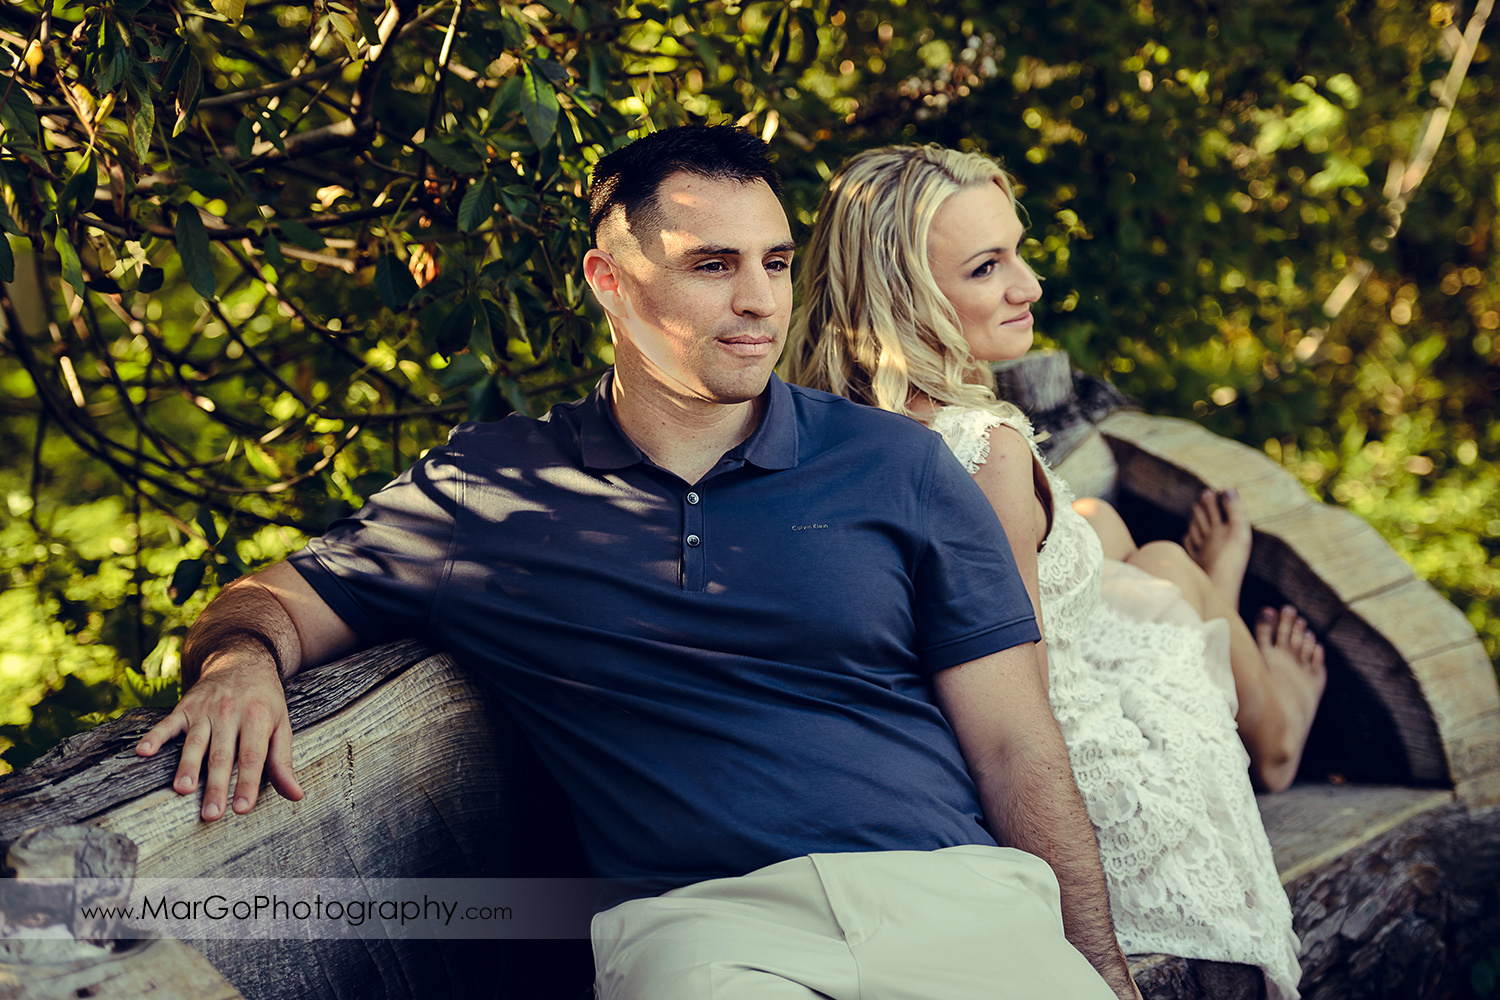 portrait of man in navy blue shirt and woman in white dress sitting back to back during engagement session at San Francisco Golden Gate Park